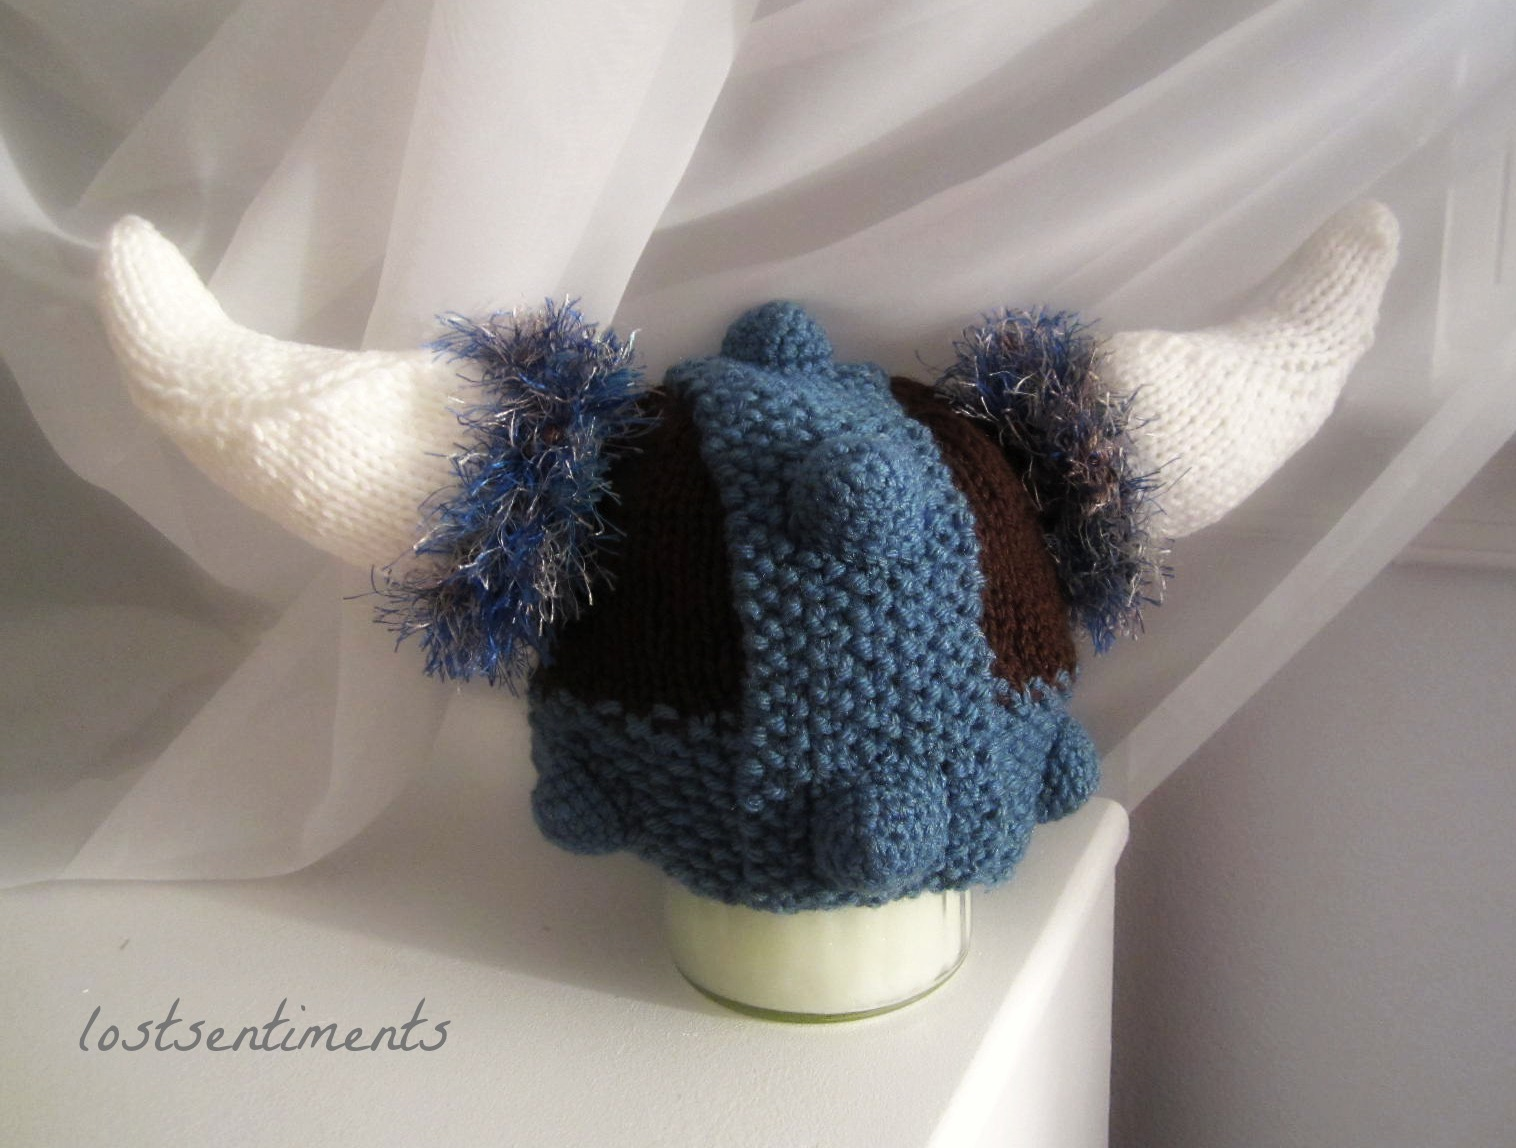 Viking Hat Knitting Pattern Free : lostsentiments: Where theres a will theres a way... and ...